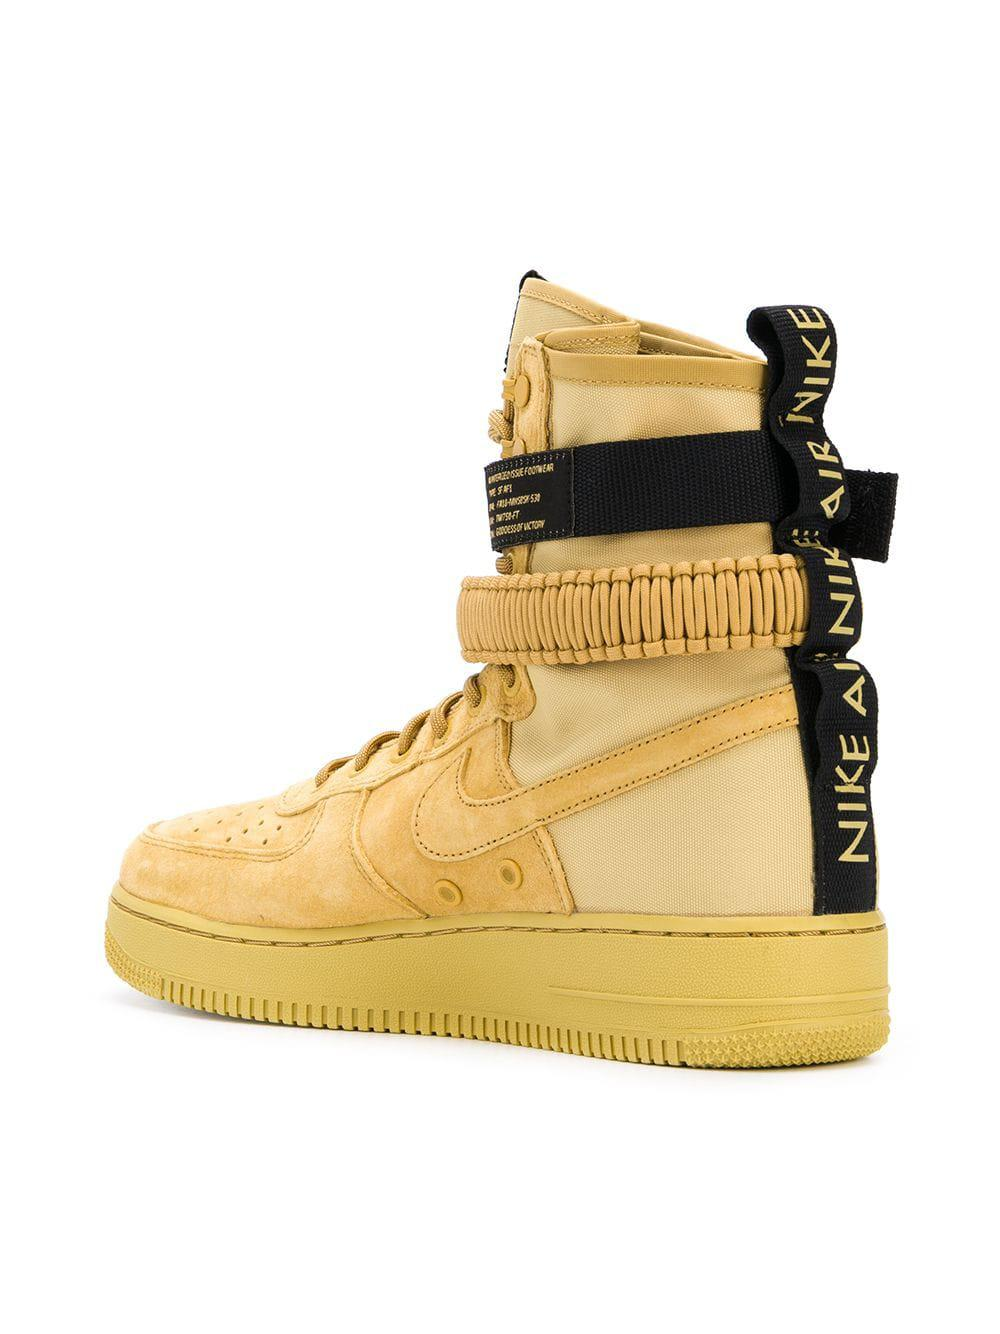 best website 4996a 6dd56 Nike Sf Air Force 1 High Top Sneakers in Yellow for Men - Lyst